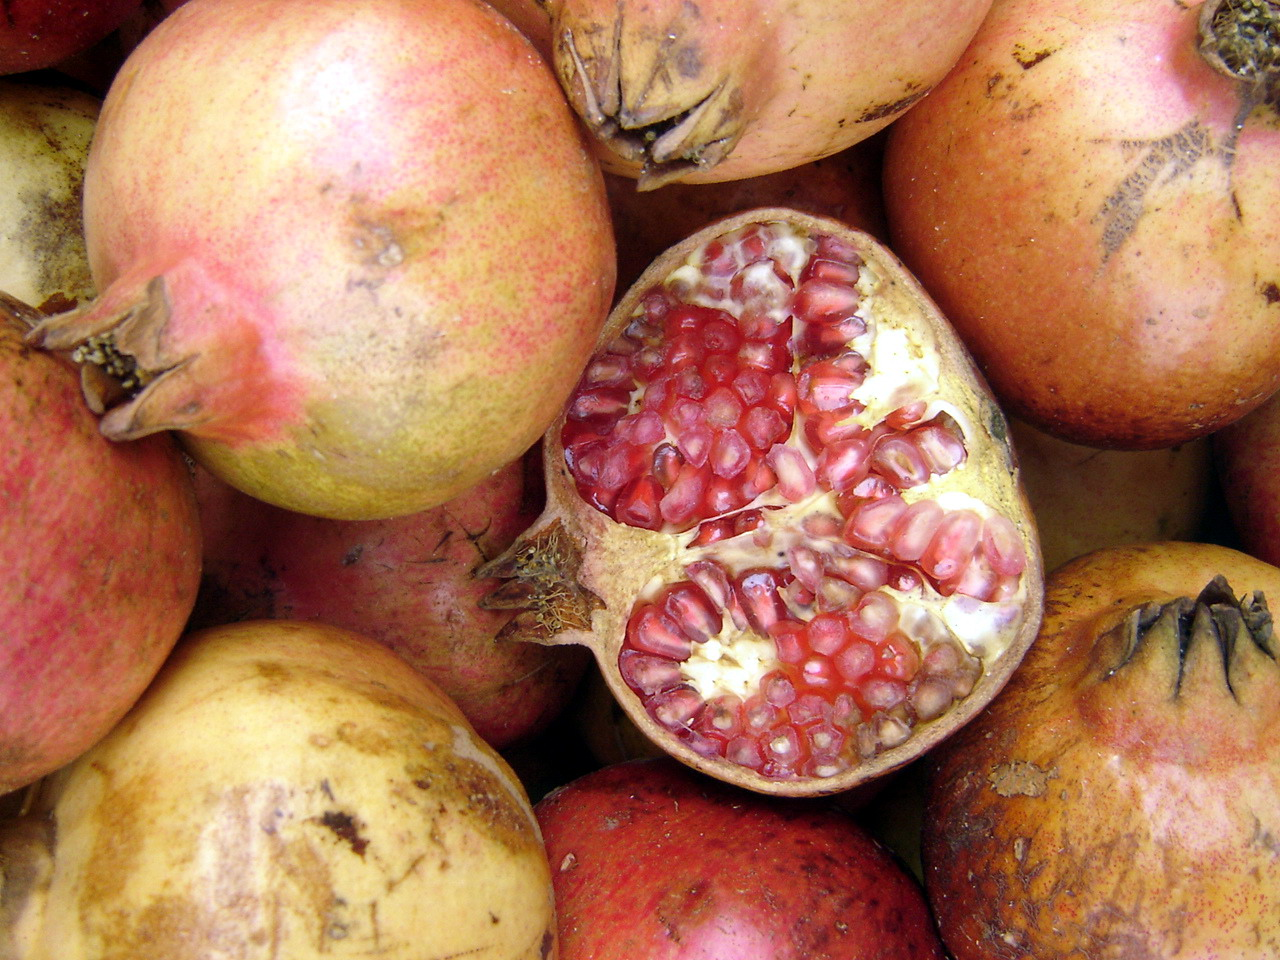 antioxidant activity of pomegranate juice and its relationship with phenolic